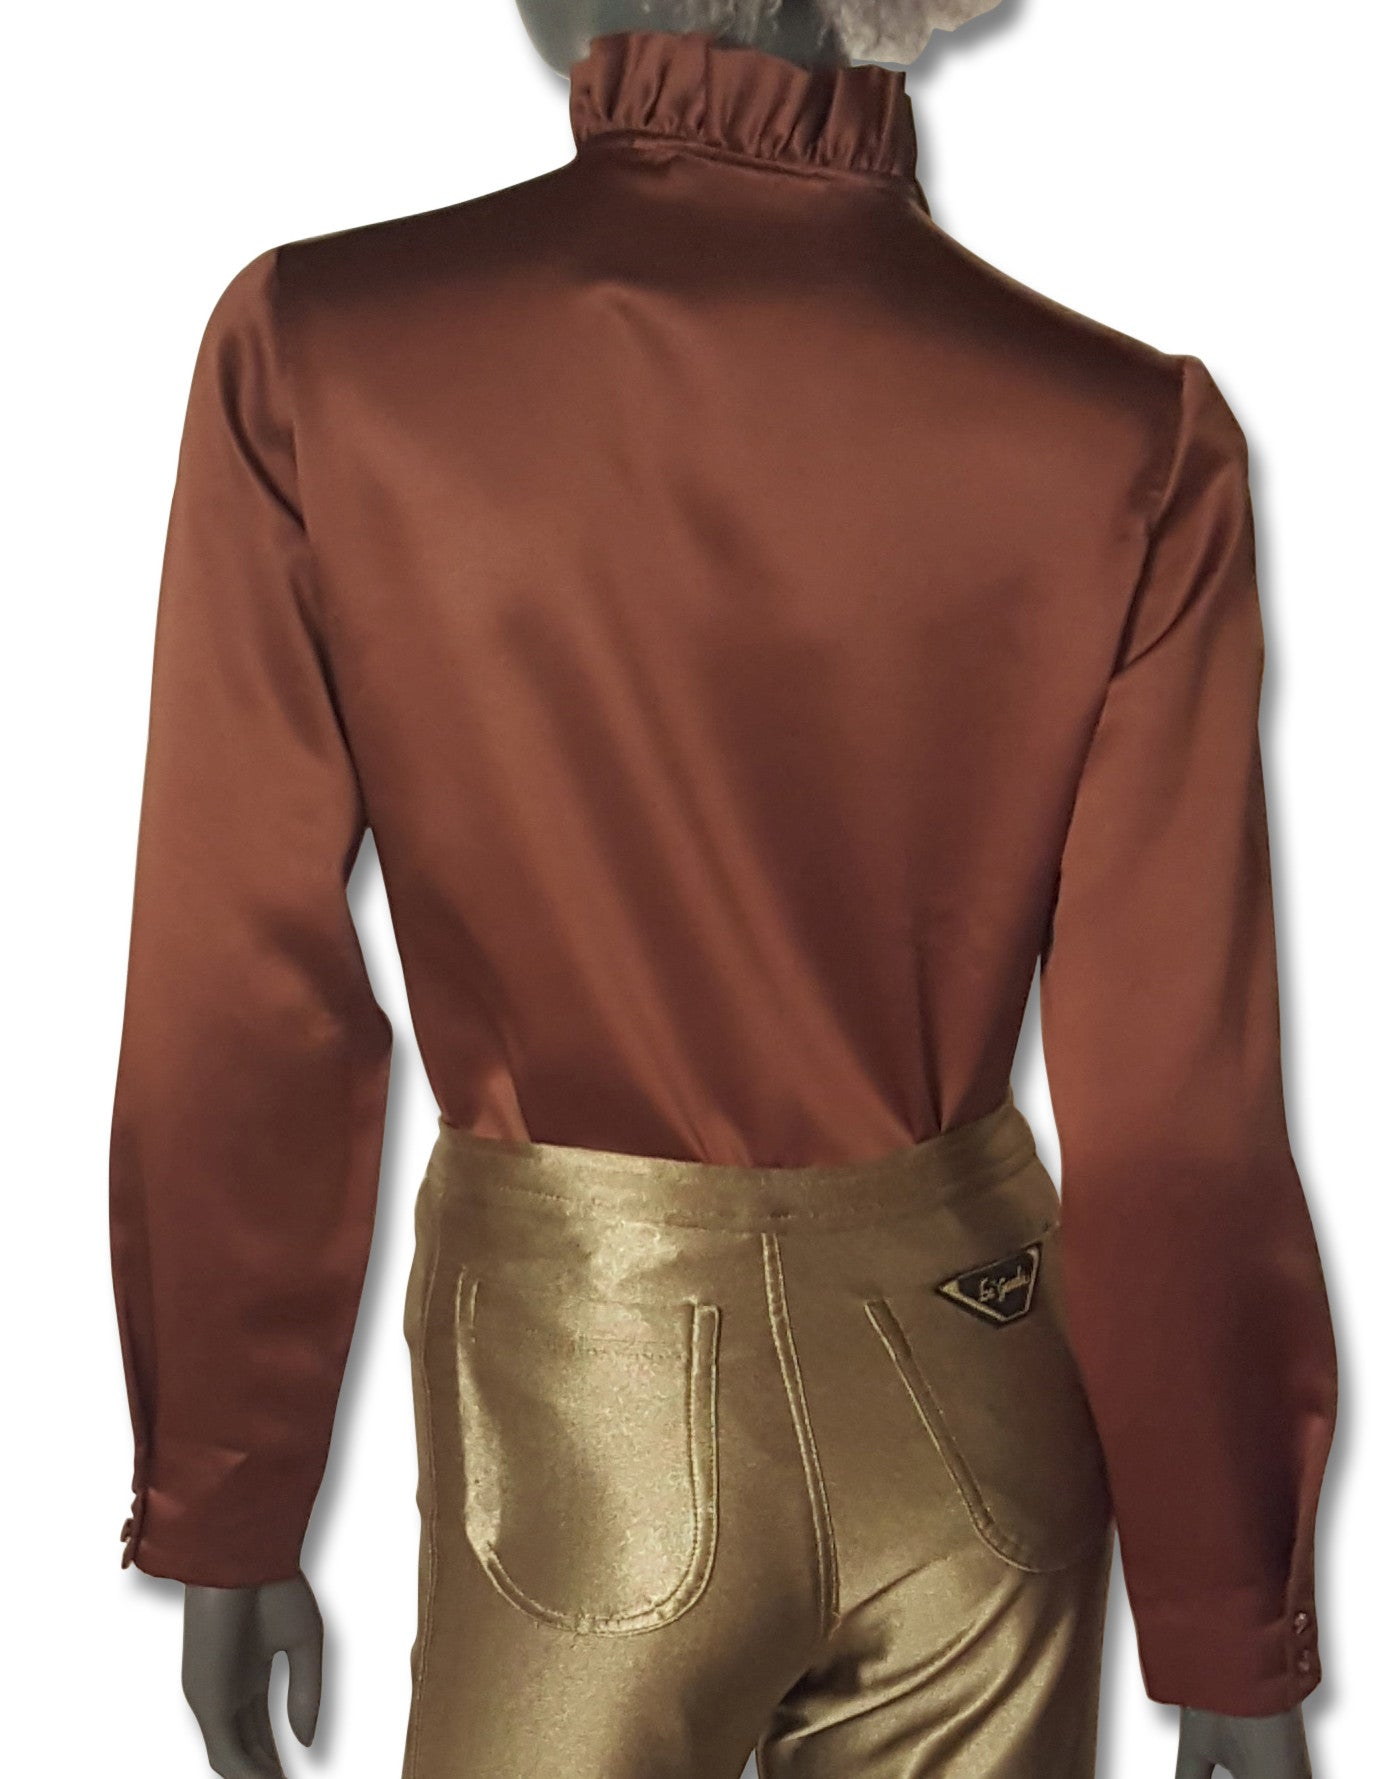 ebb1128b14d390 ... 1 · Milk Chocolate Satin 70s Blouse - refashioner - 2 ...